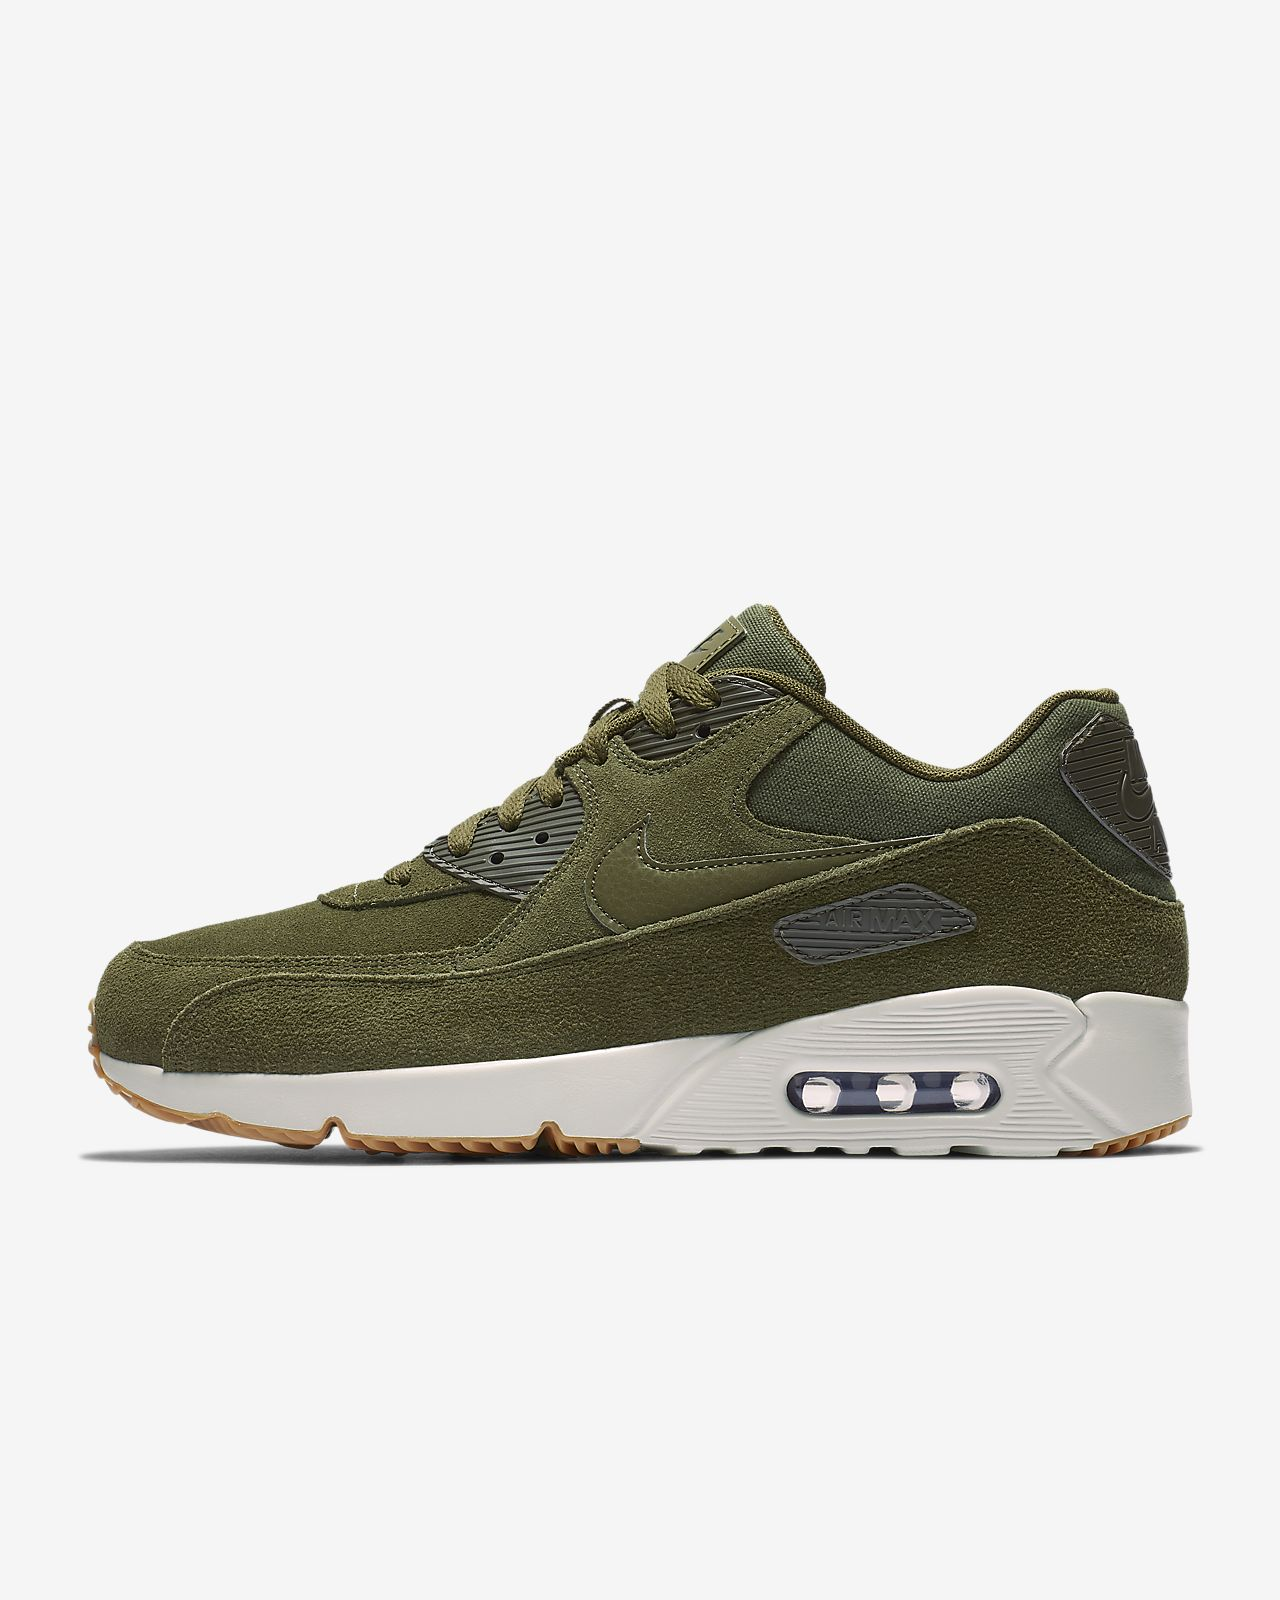 wholesale dealer 3fb3f 96fdb ... Nike Air Max 90 Ultra 2.0 Men s Shoe